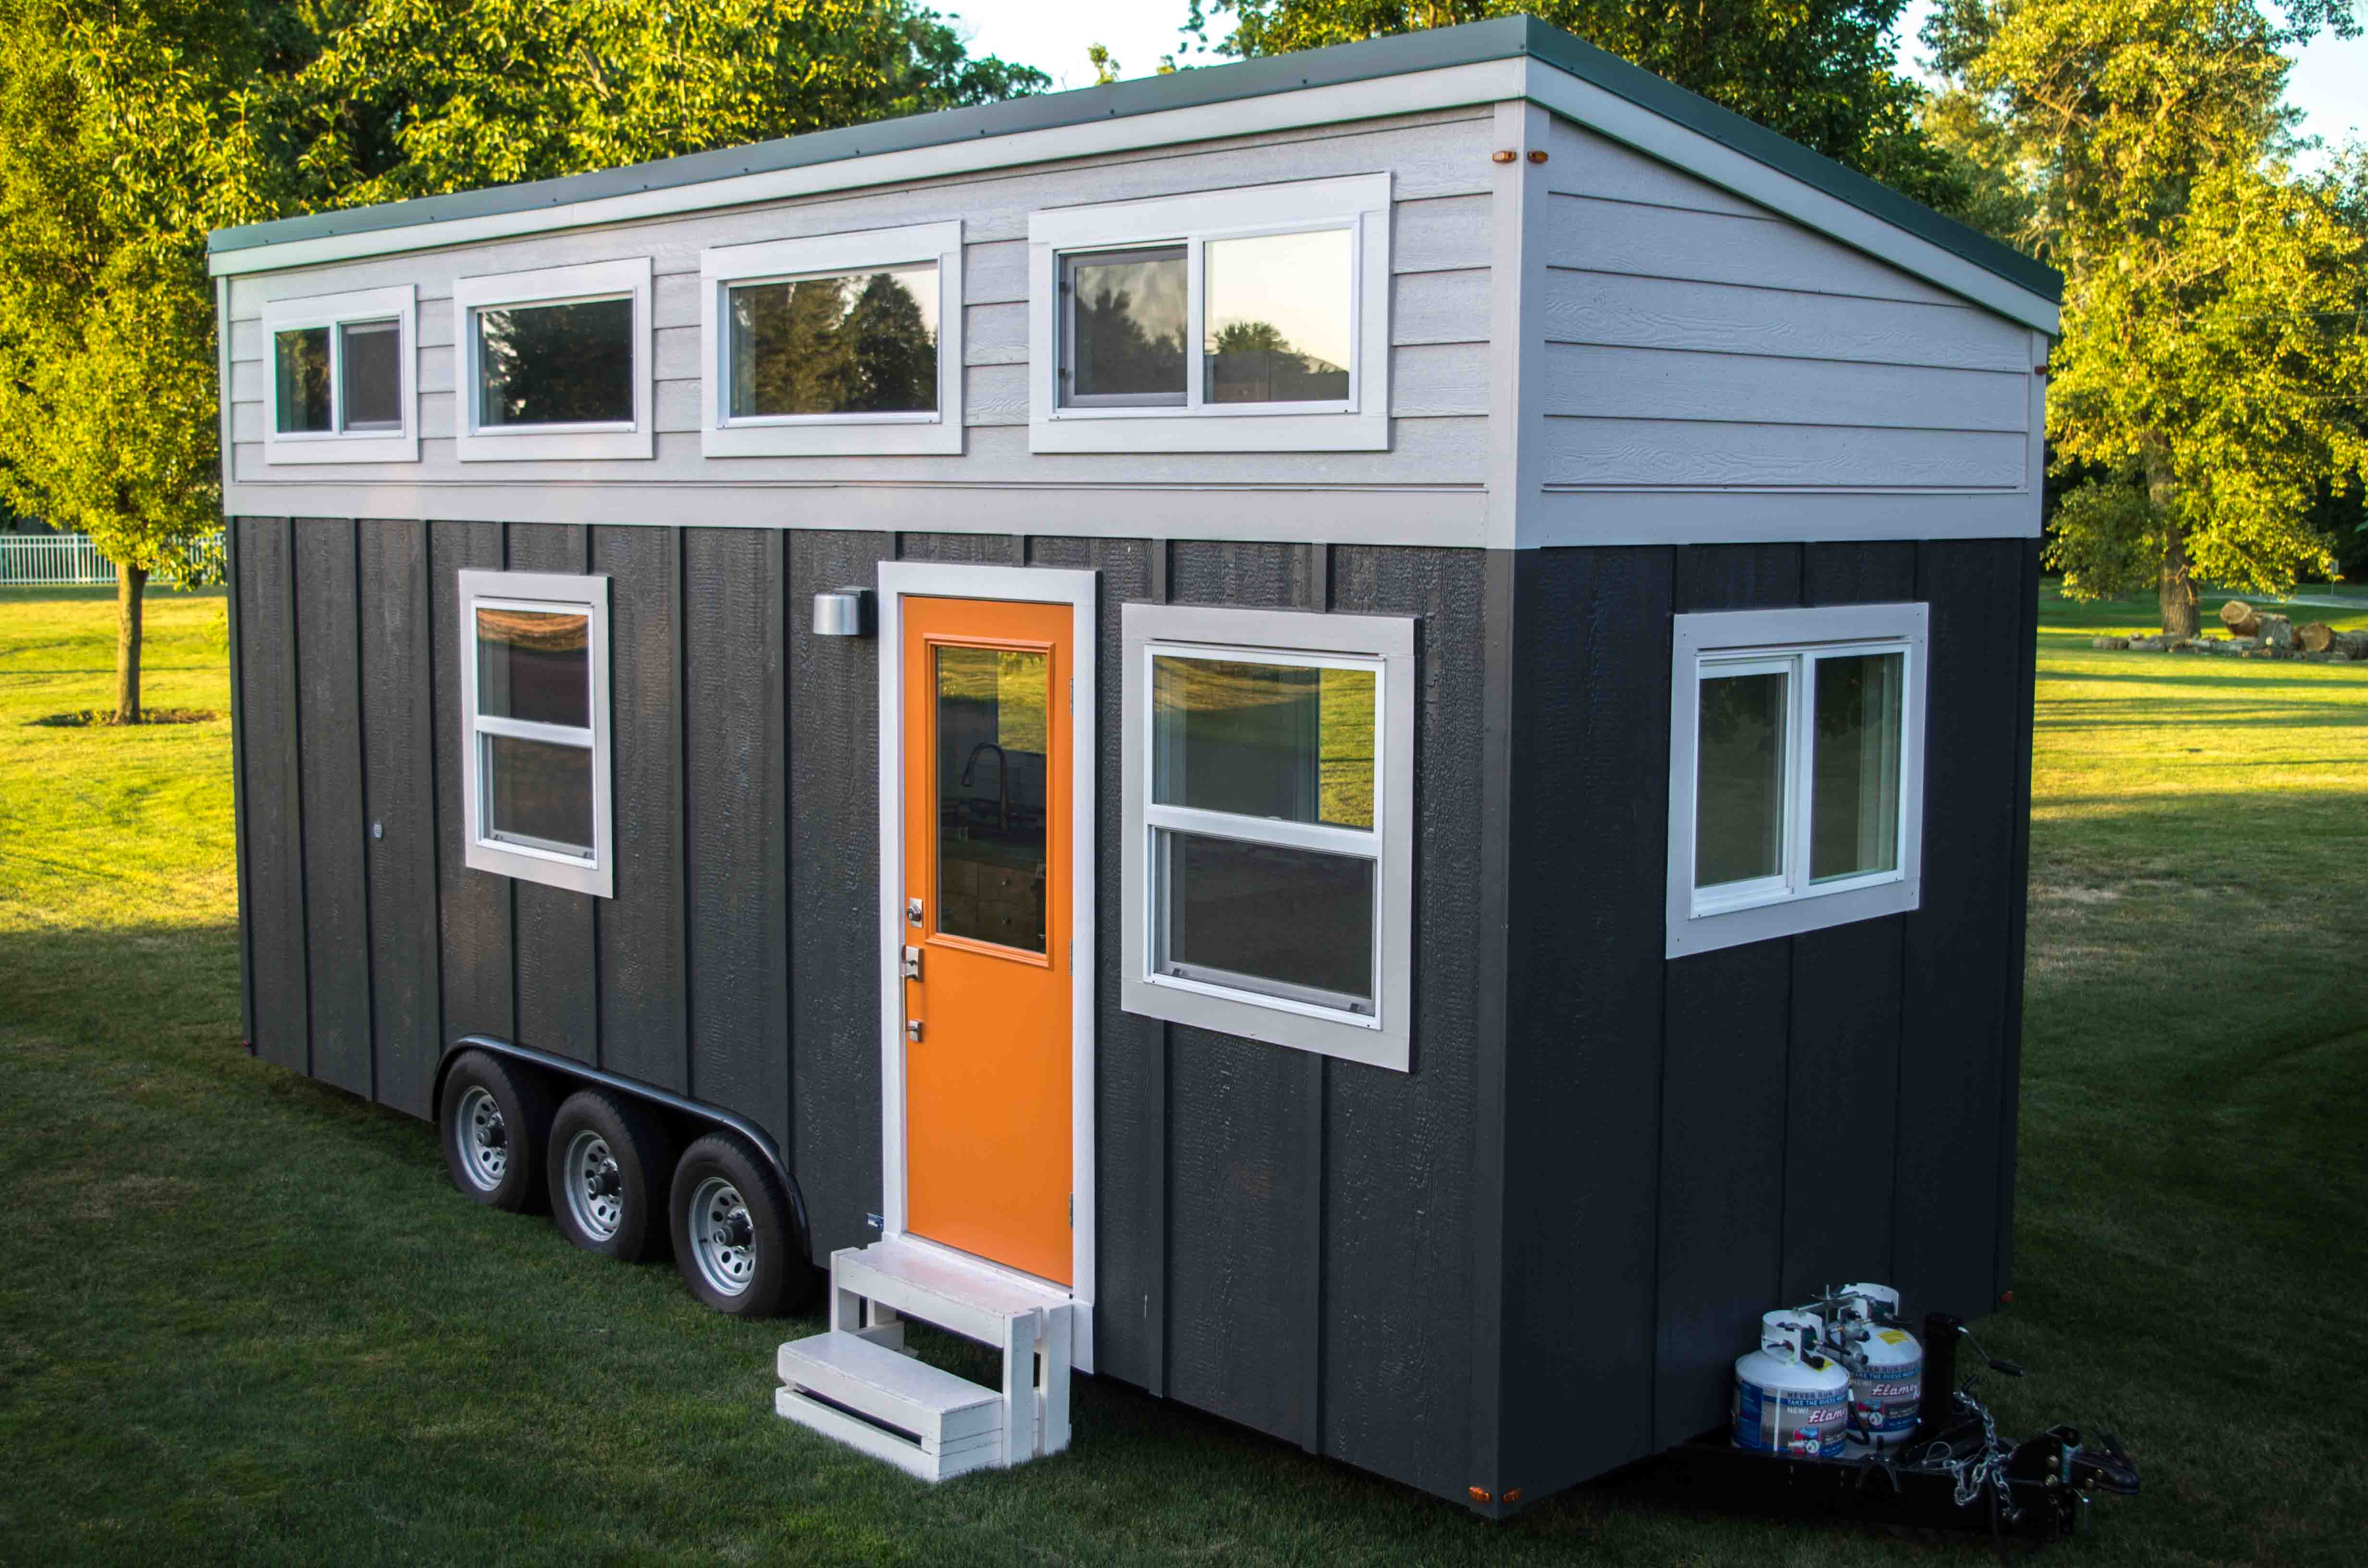 Phenomenal Models Seattle Tiny Homes Largest Home Design Picture Inspirations Pitcheantrous